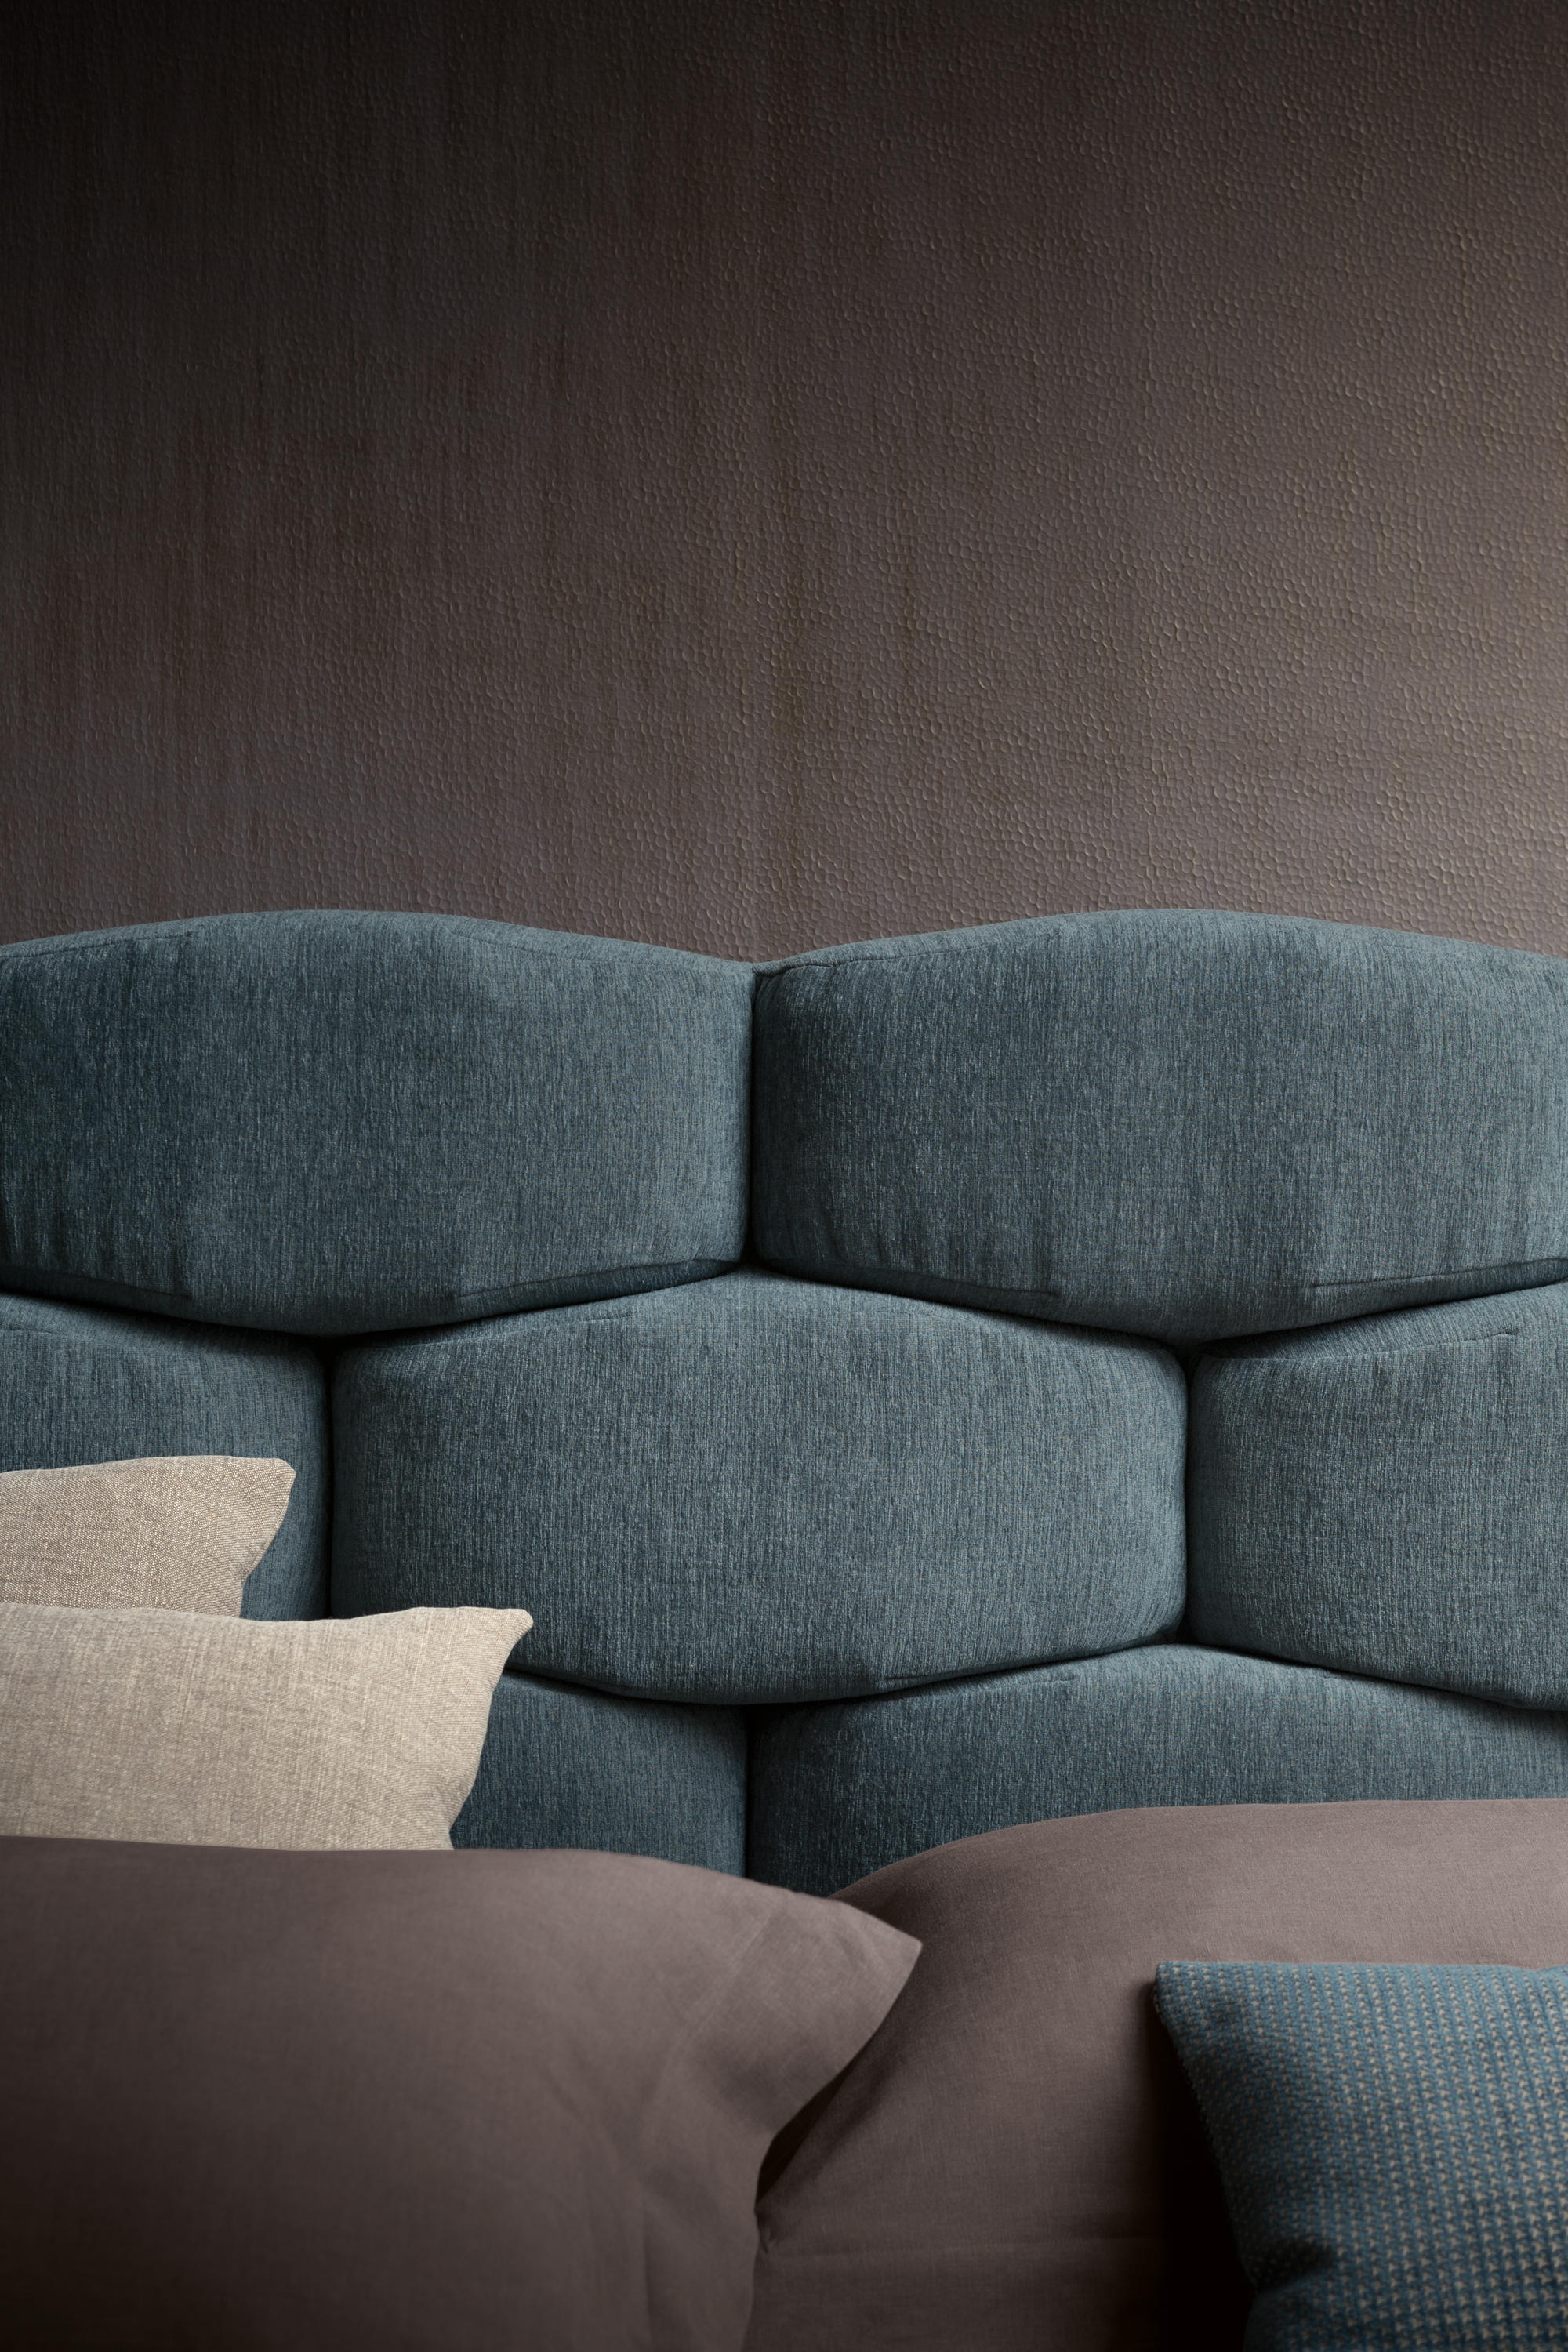 Colombo Divani A Meda majal bed - beds from flou | architonic